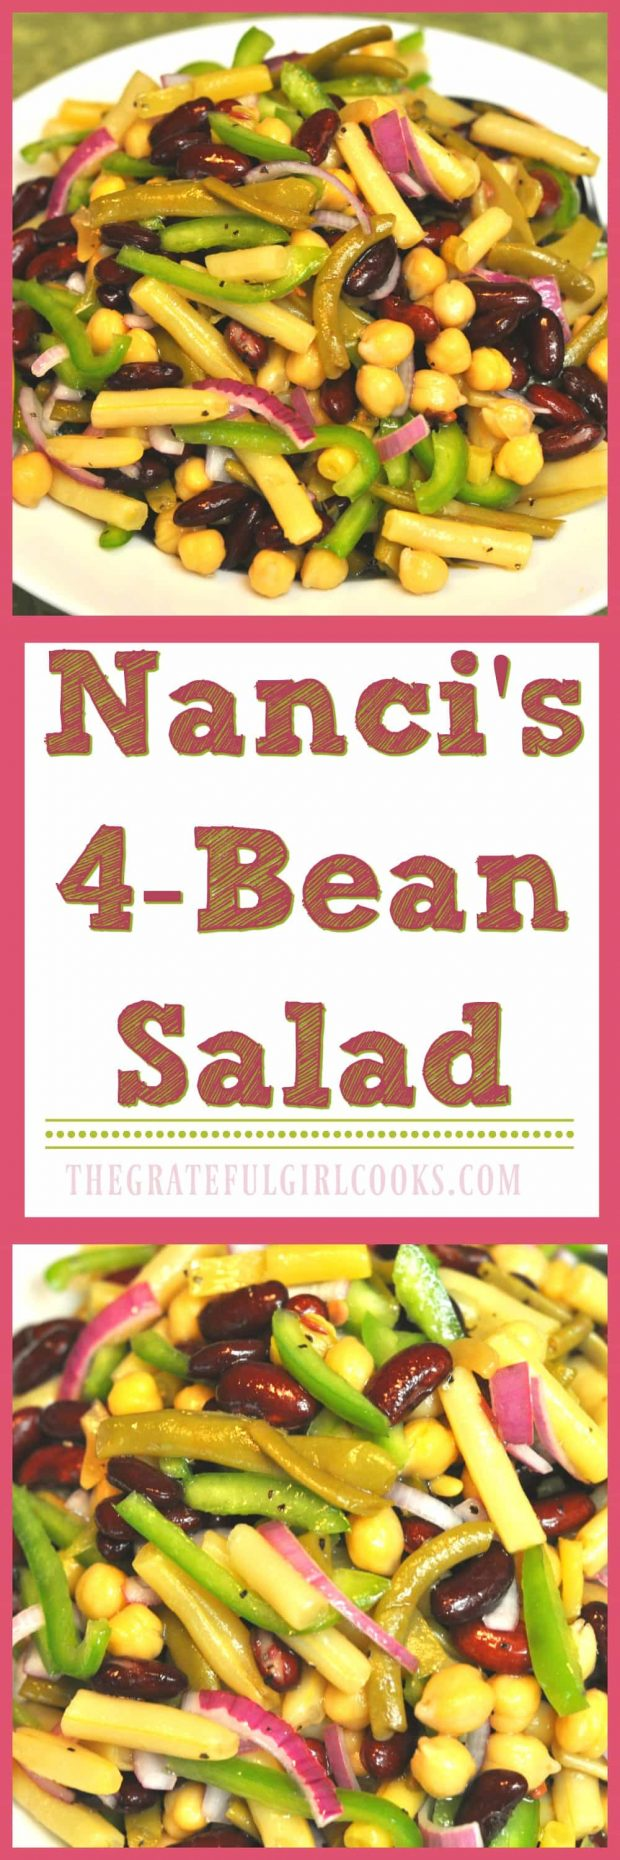 Long pin for Nanci's 4-Bean Salad